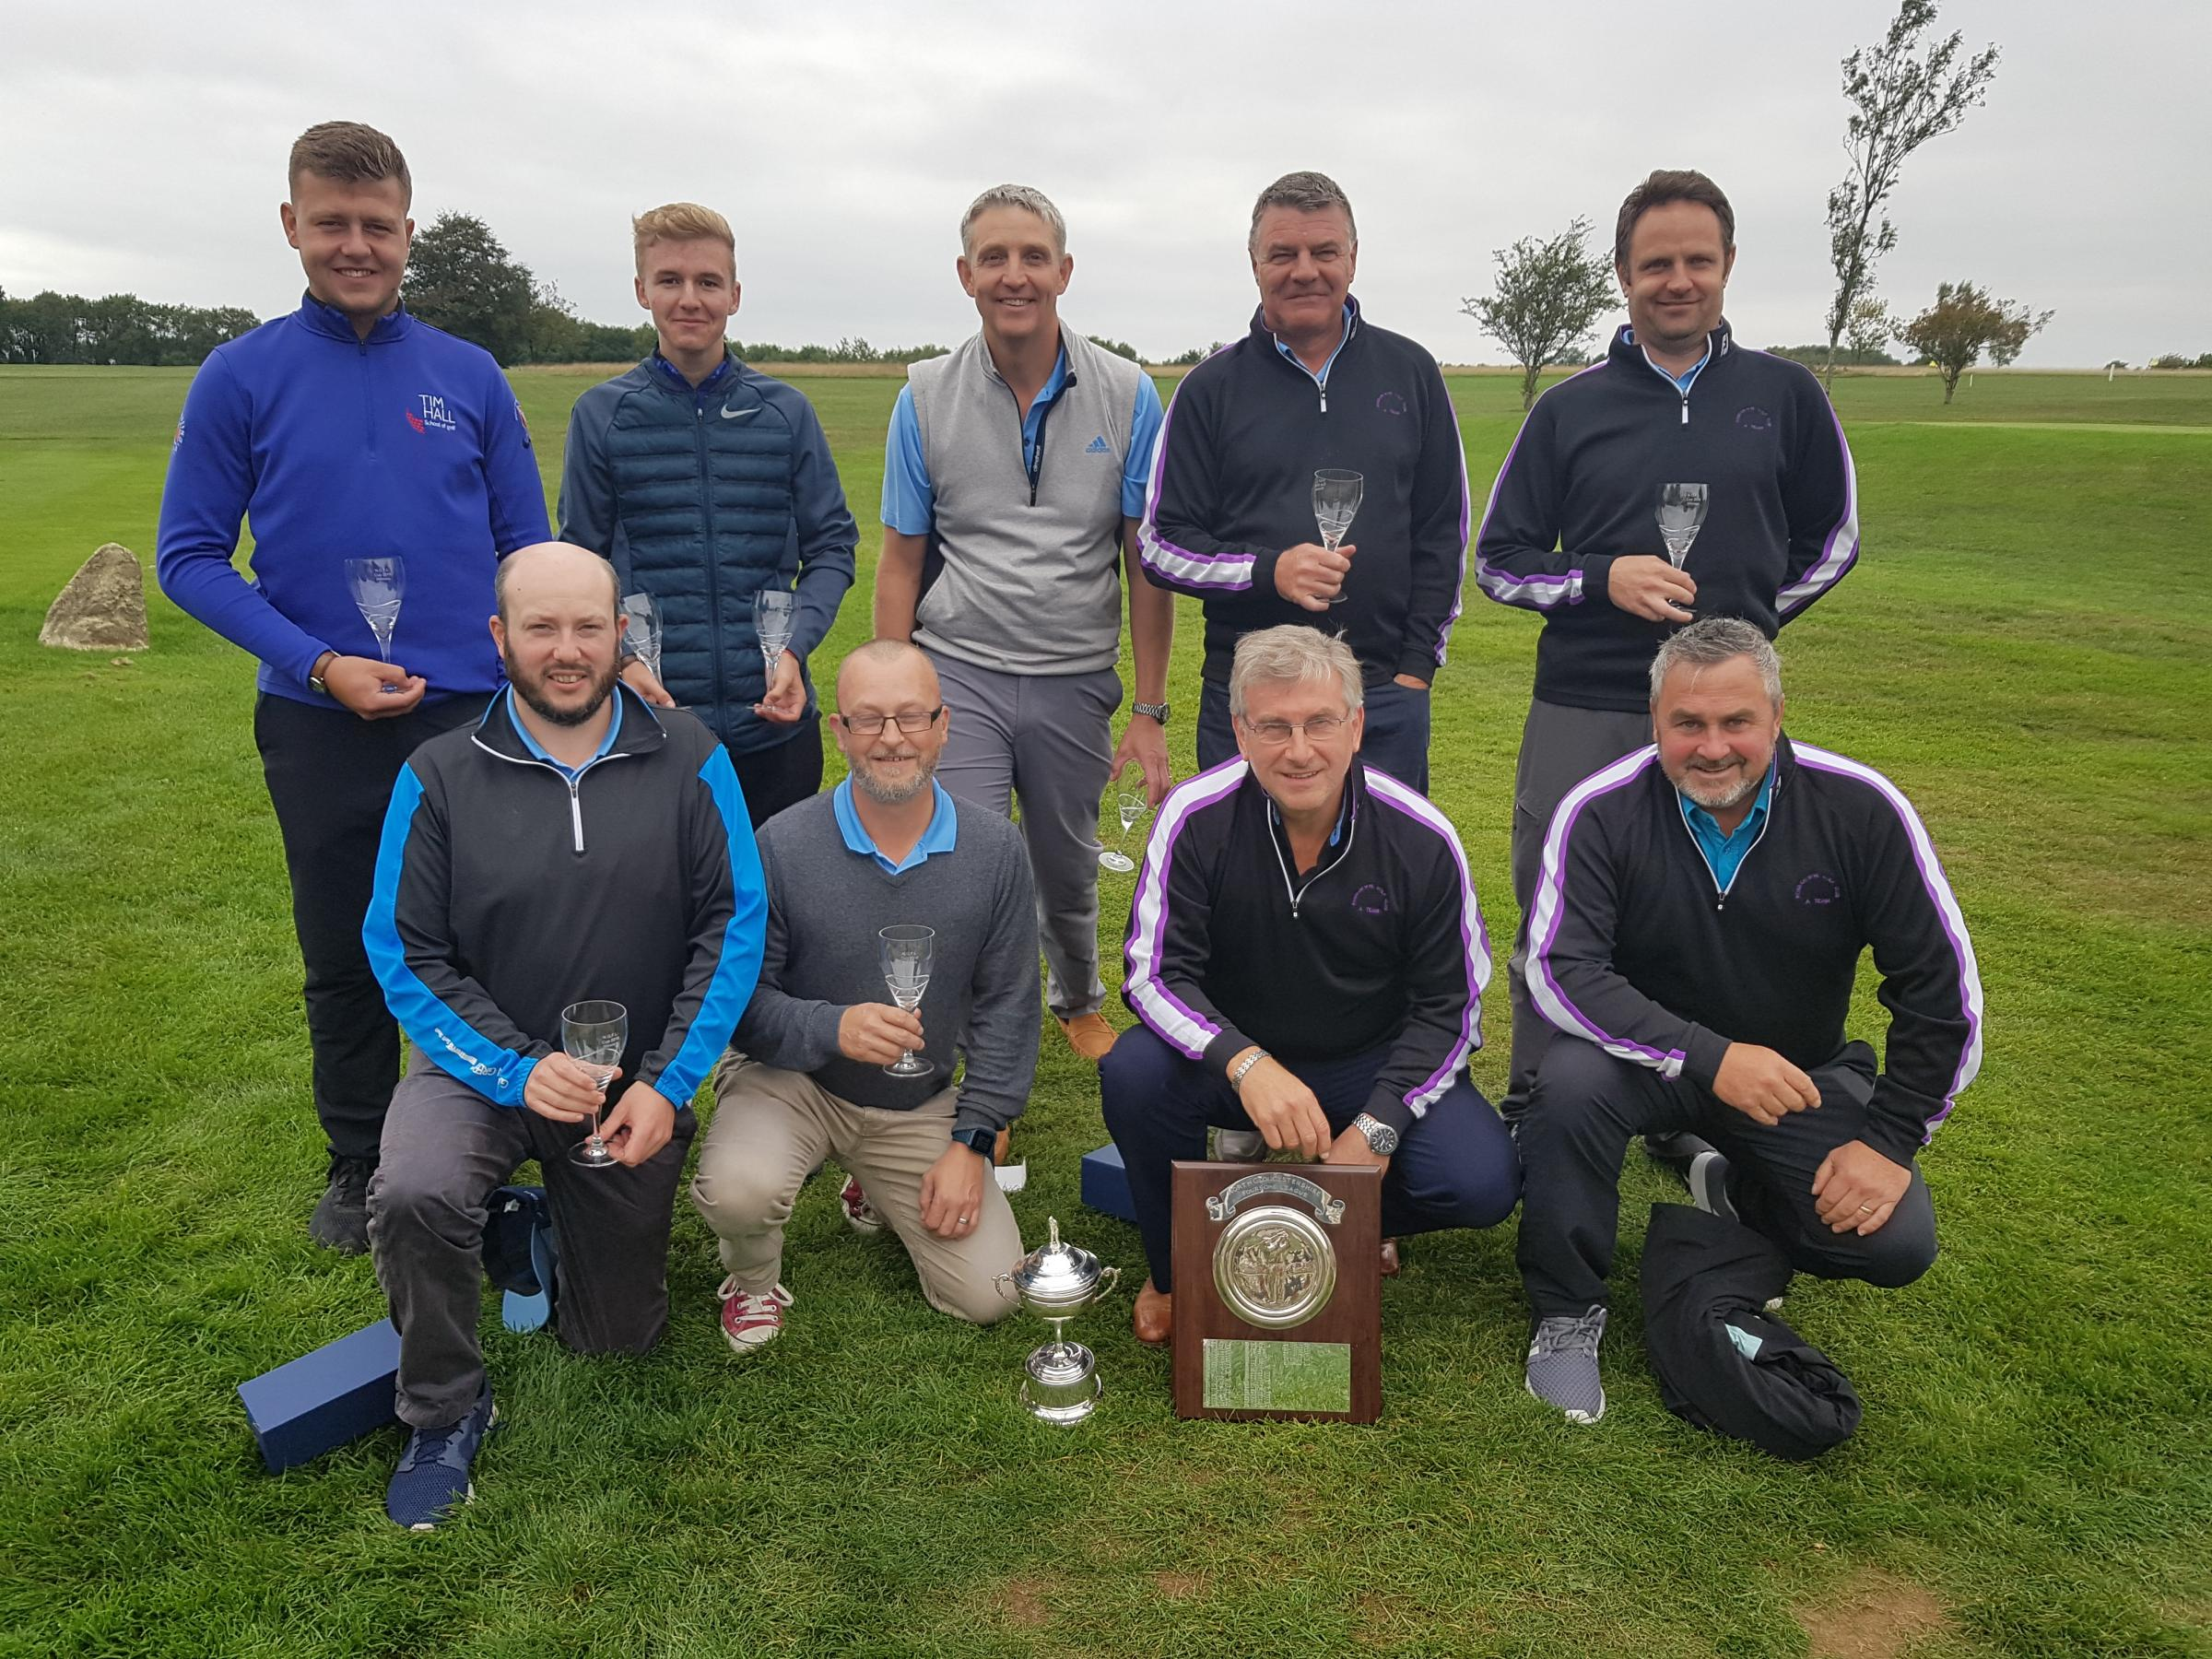 Ross Team winners of the 2018 North Glos Foursomes League Cup and from l to r are Back Row; Cam Haines, Harry Griffiths, Steve Price, Simon Mills & Front Row; Tim Wyatt, Robin Eckley, Neil Lancett and Alistair Watkins